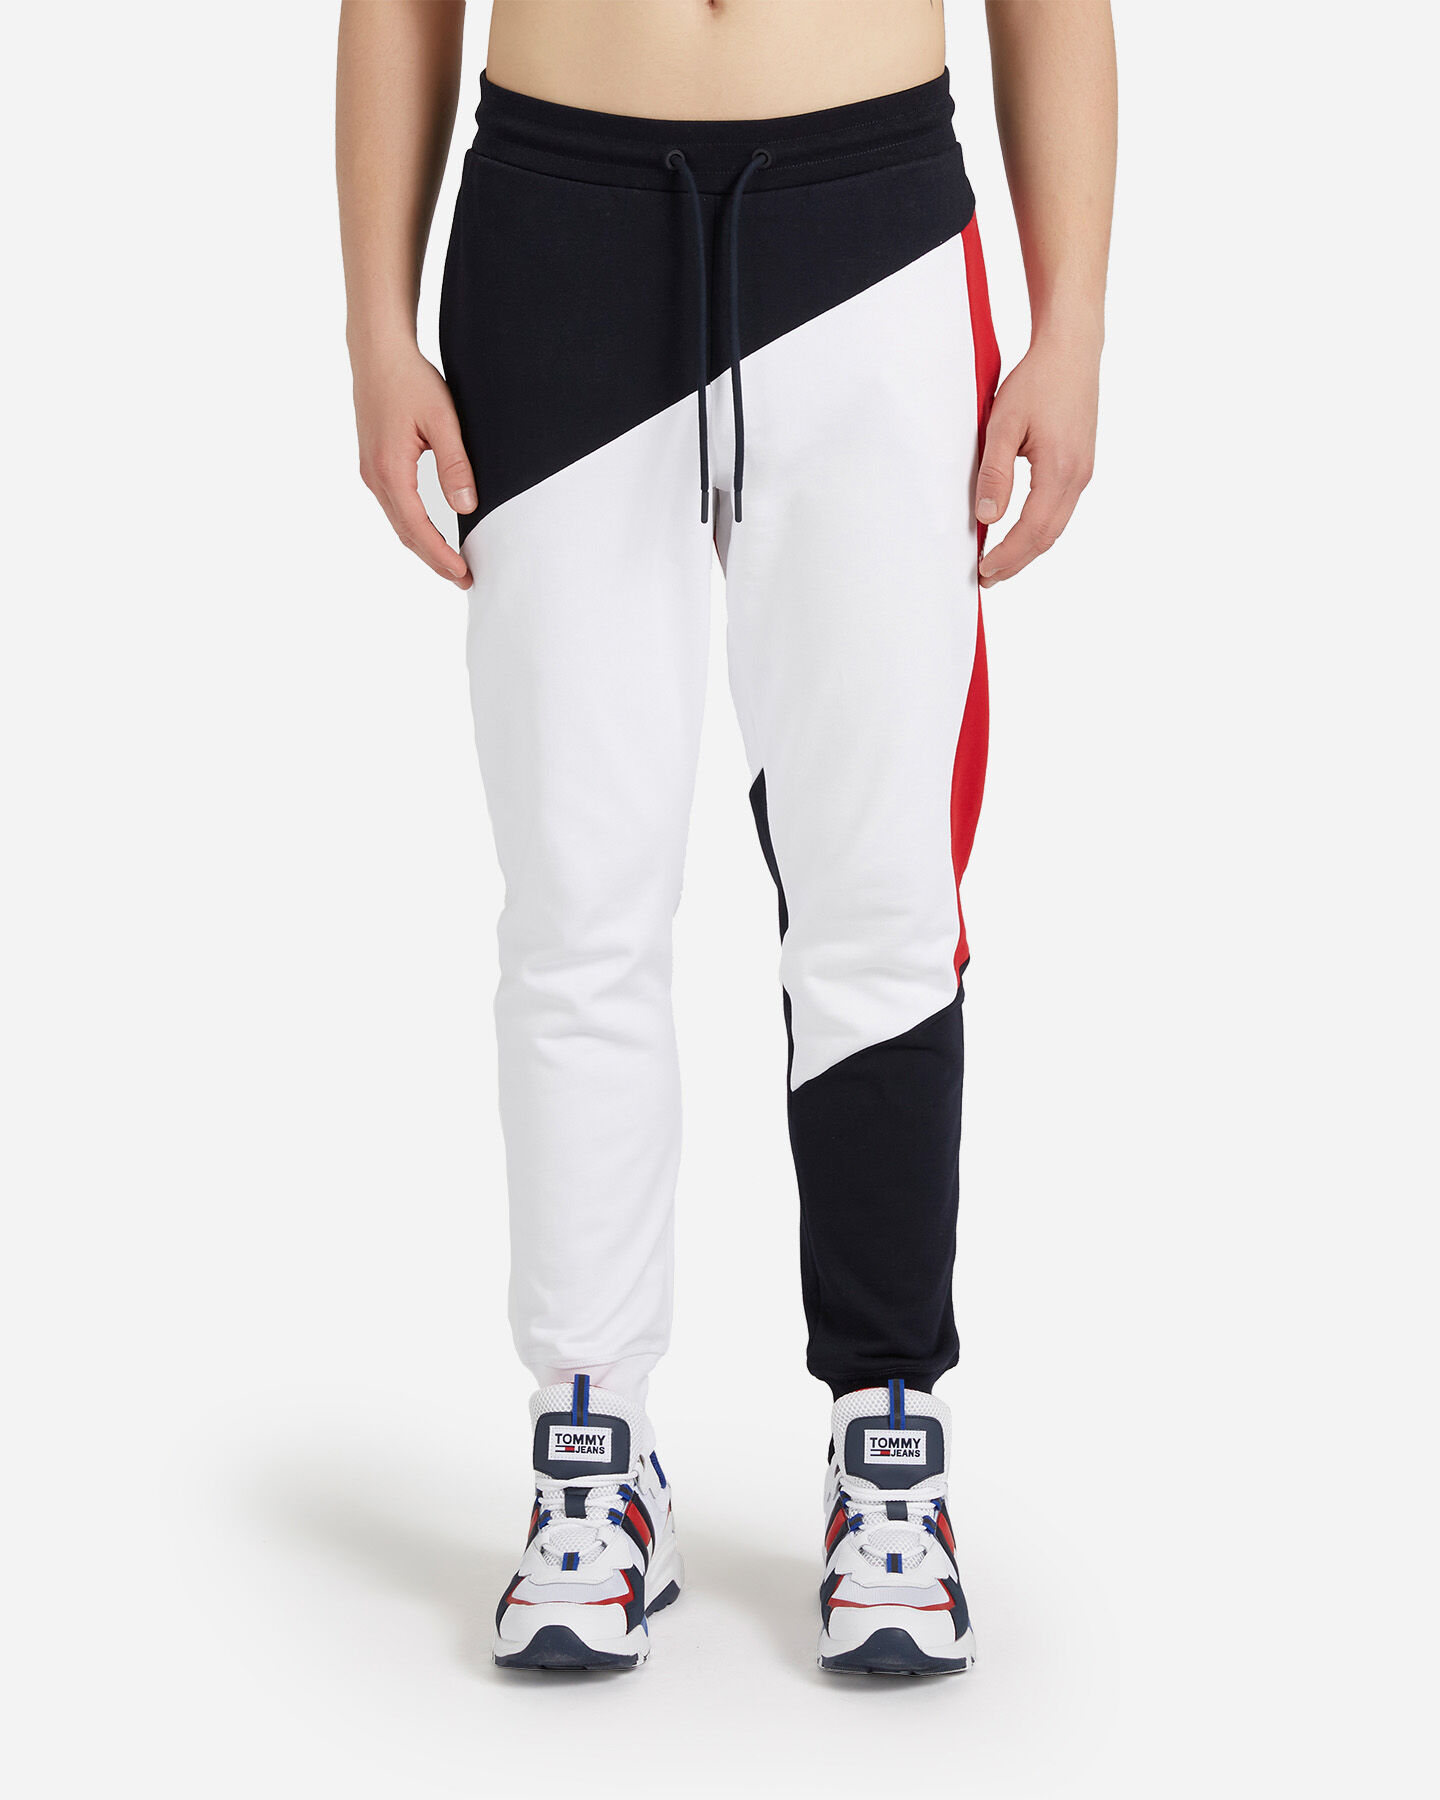 Pantalone TOMMY HILFIGER COLOR M S4089516 scatto 0